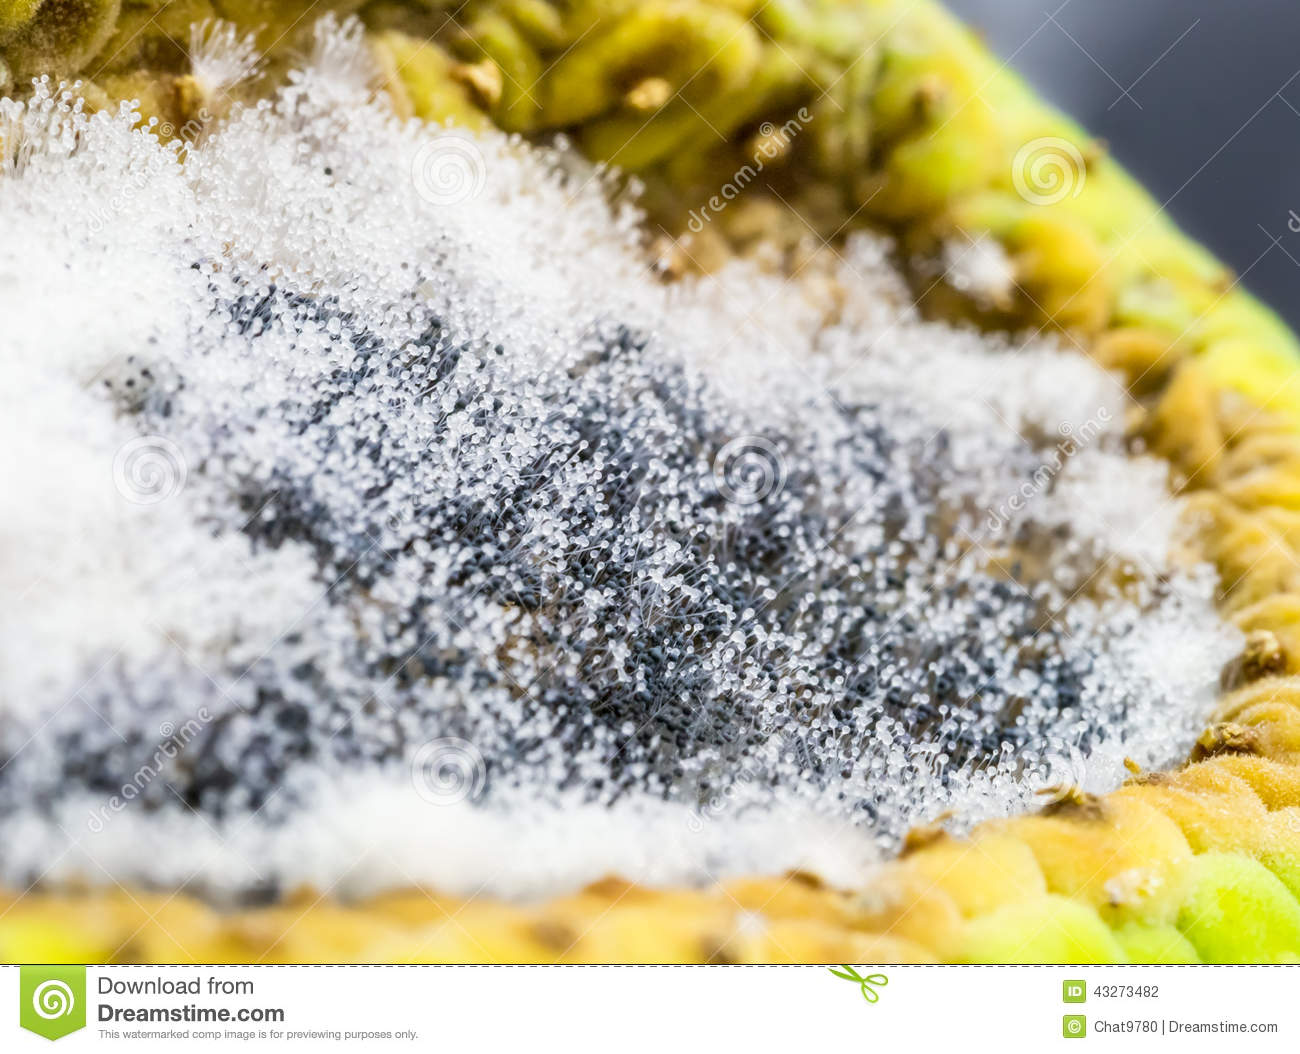 Bread Mold Growing In Ripe Fruit Cell Stock Photo - Image ...